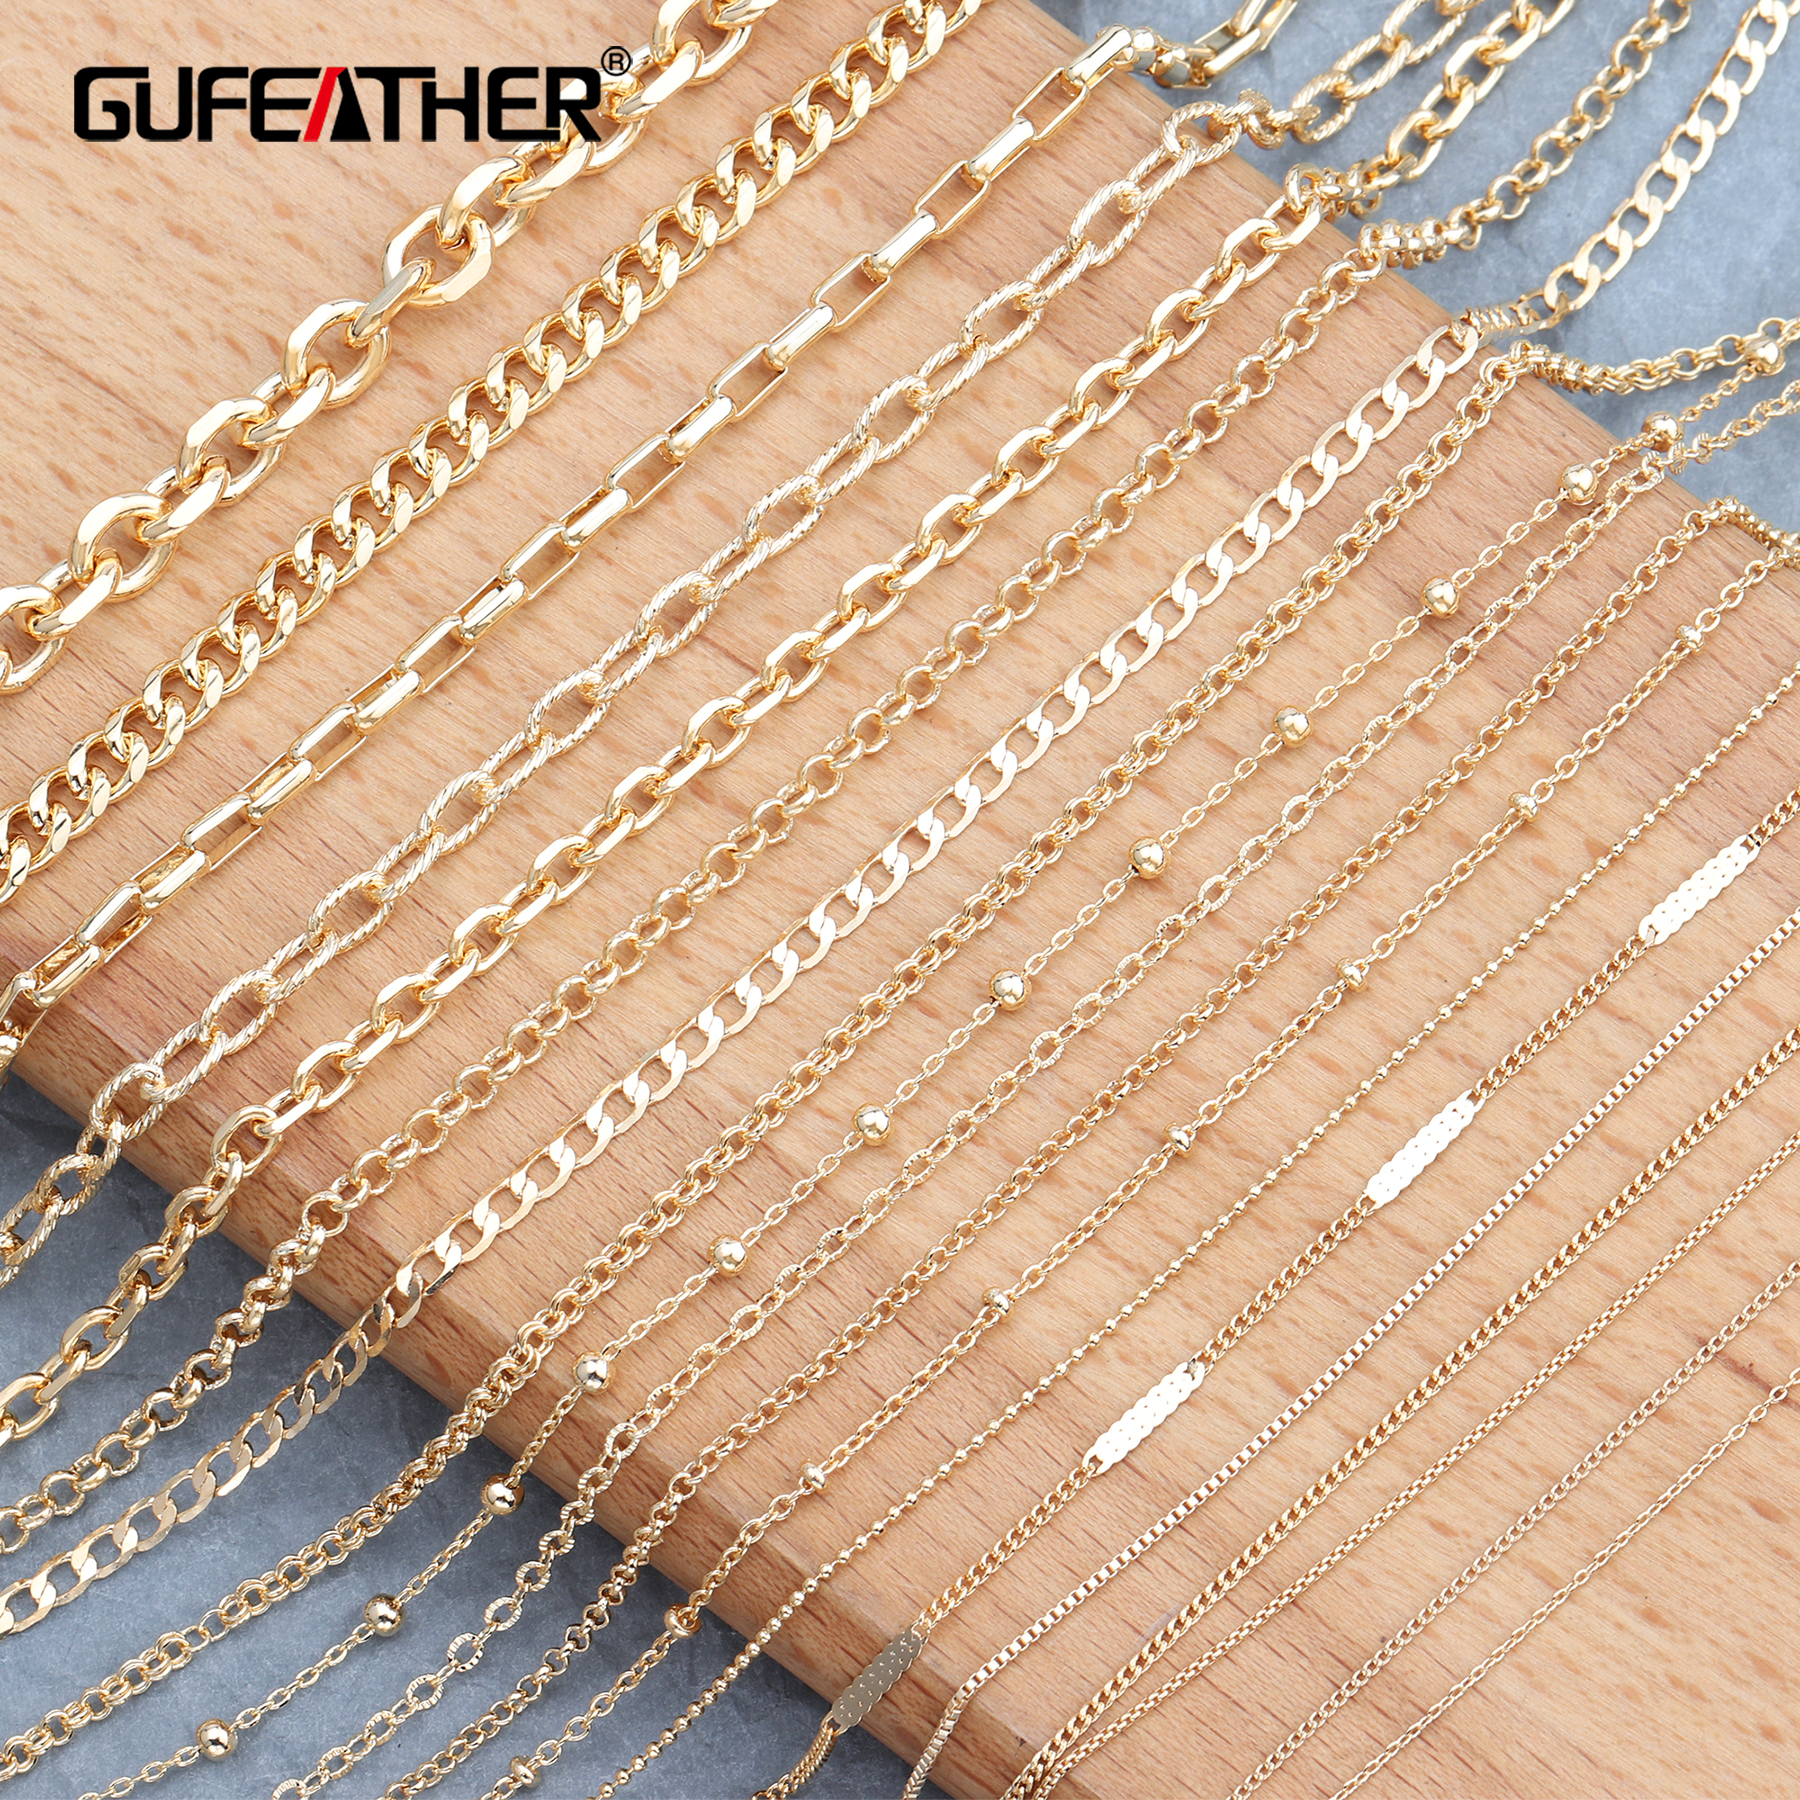 GUFEATHER C65,jewelry Accessories,18k Gold Plated,copper Chain,environmental Protection,jewelry Making,diy Chain Necklace,3m/lot